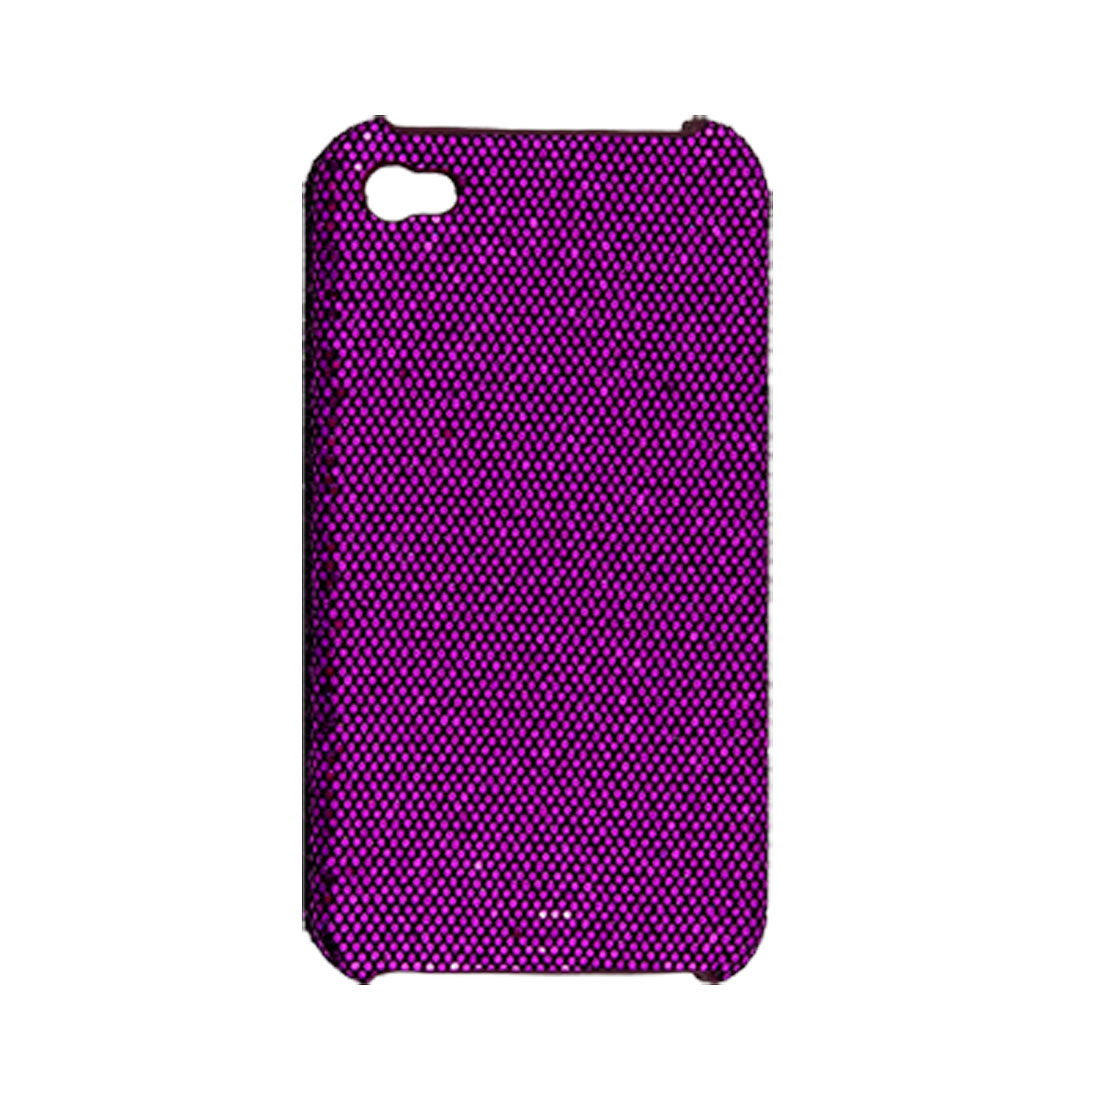 Rubberized Hard Plastic w Purple Glittery Sequin Back Case for iPhone 4 4G